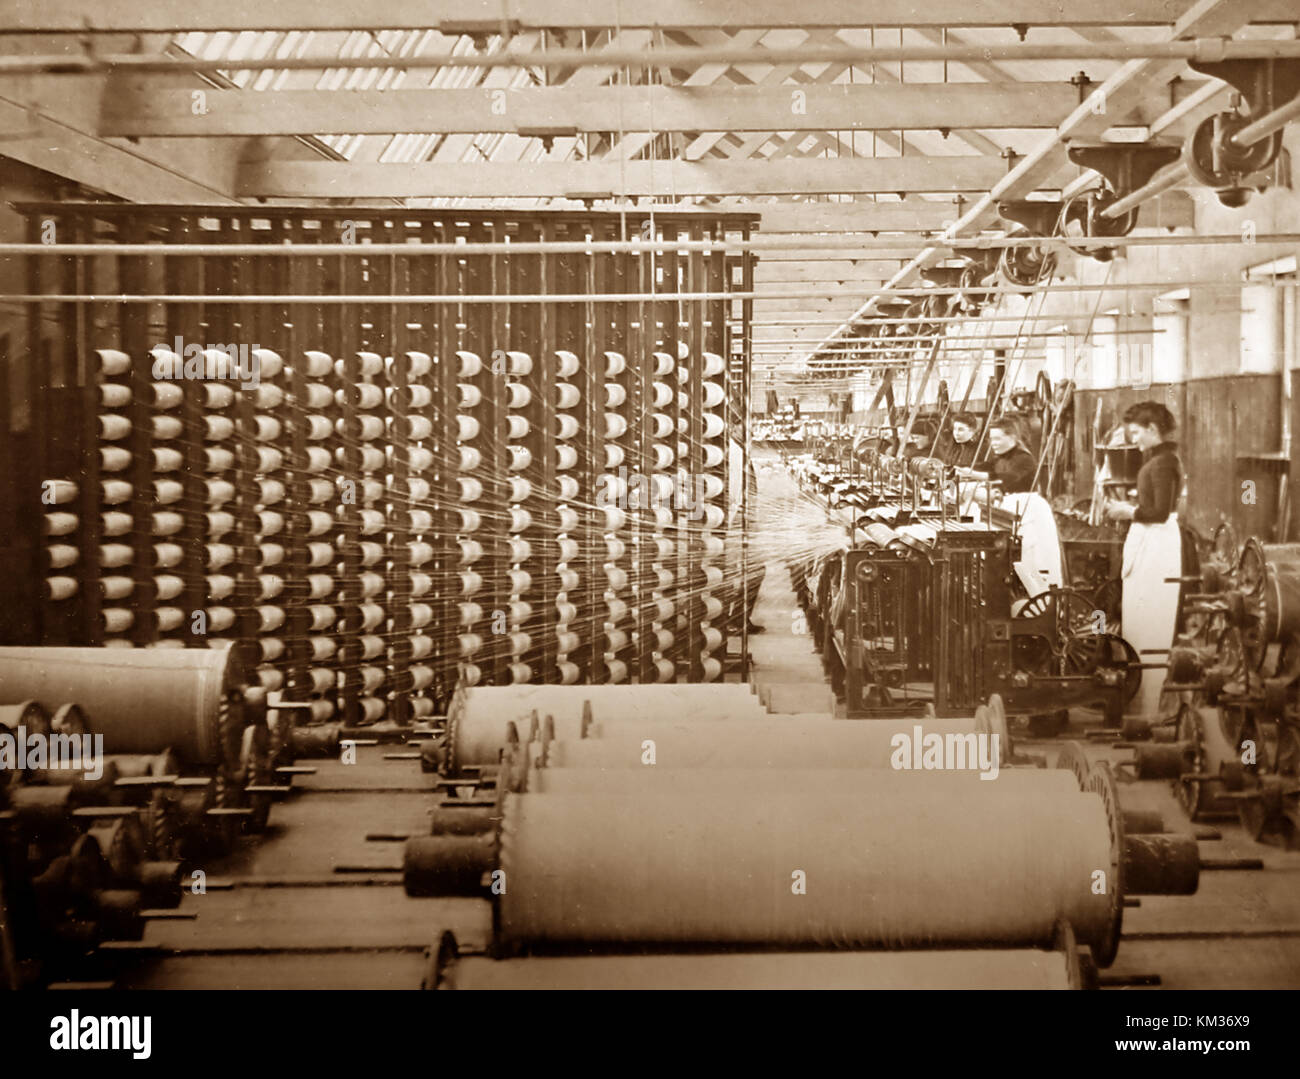 Old Linen Factory Stock Photos & Old Linen Factory Stock Images - Alamy